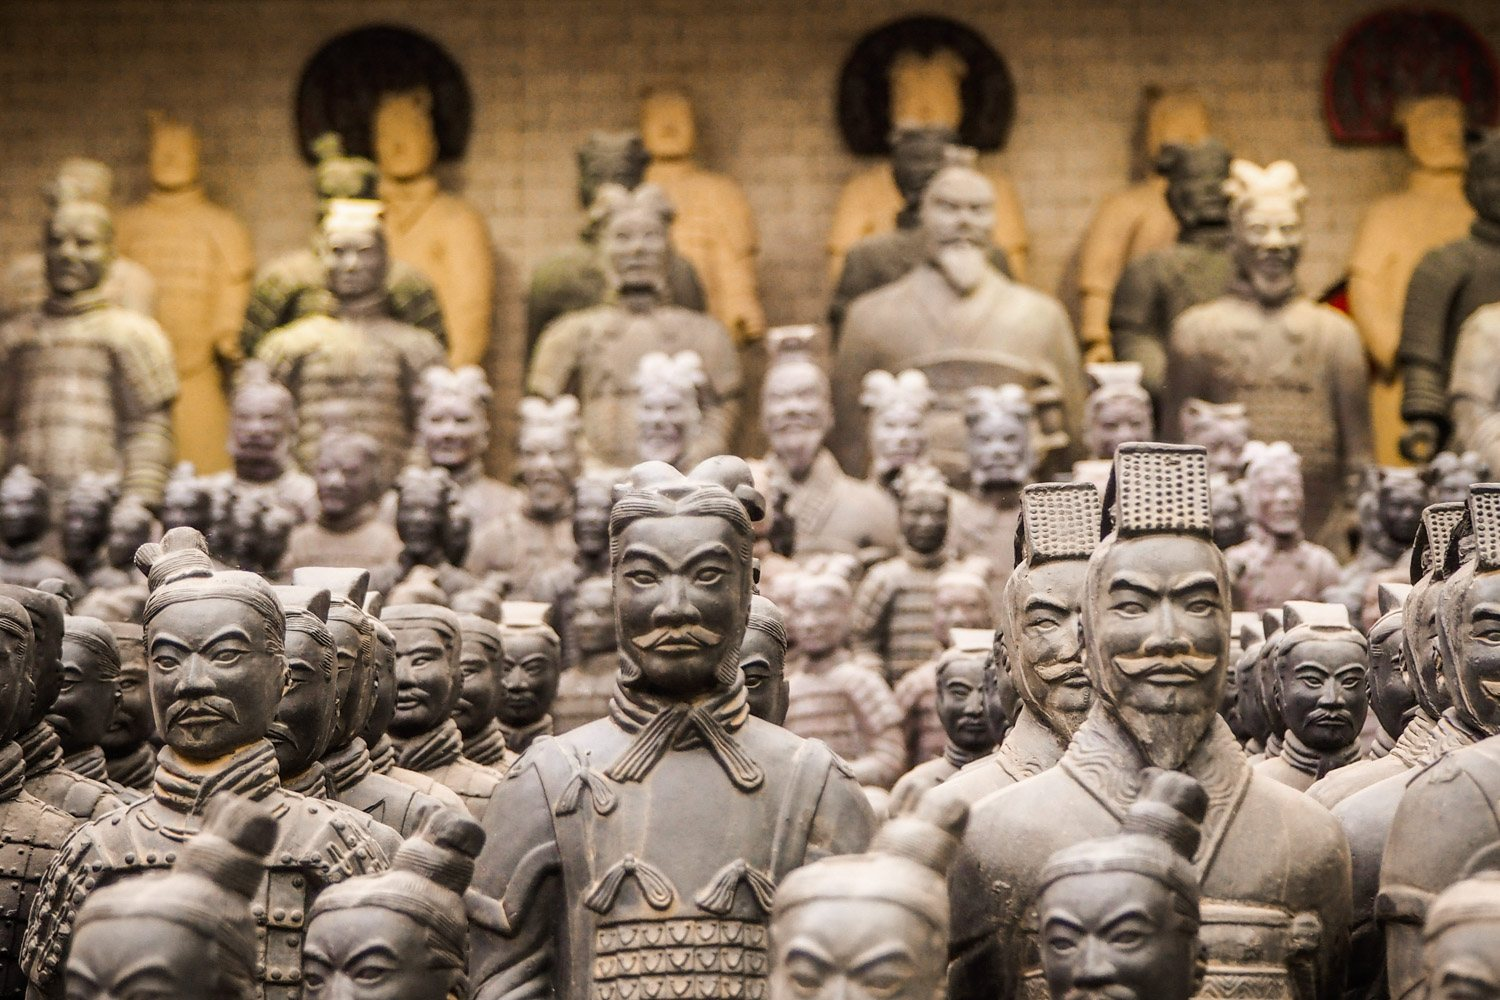 Tips for Visiting the Terracotta Army in Xi'an • The Blonde Abroad